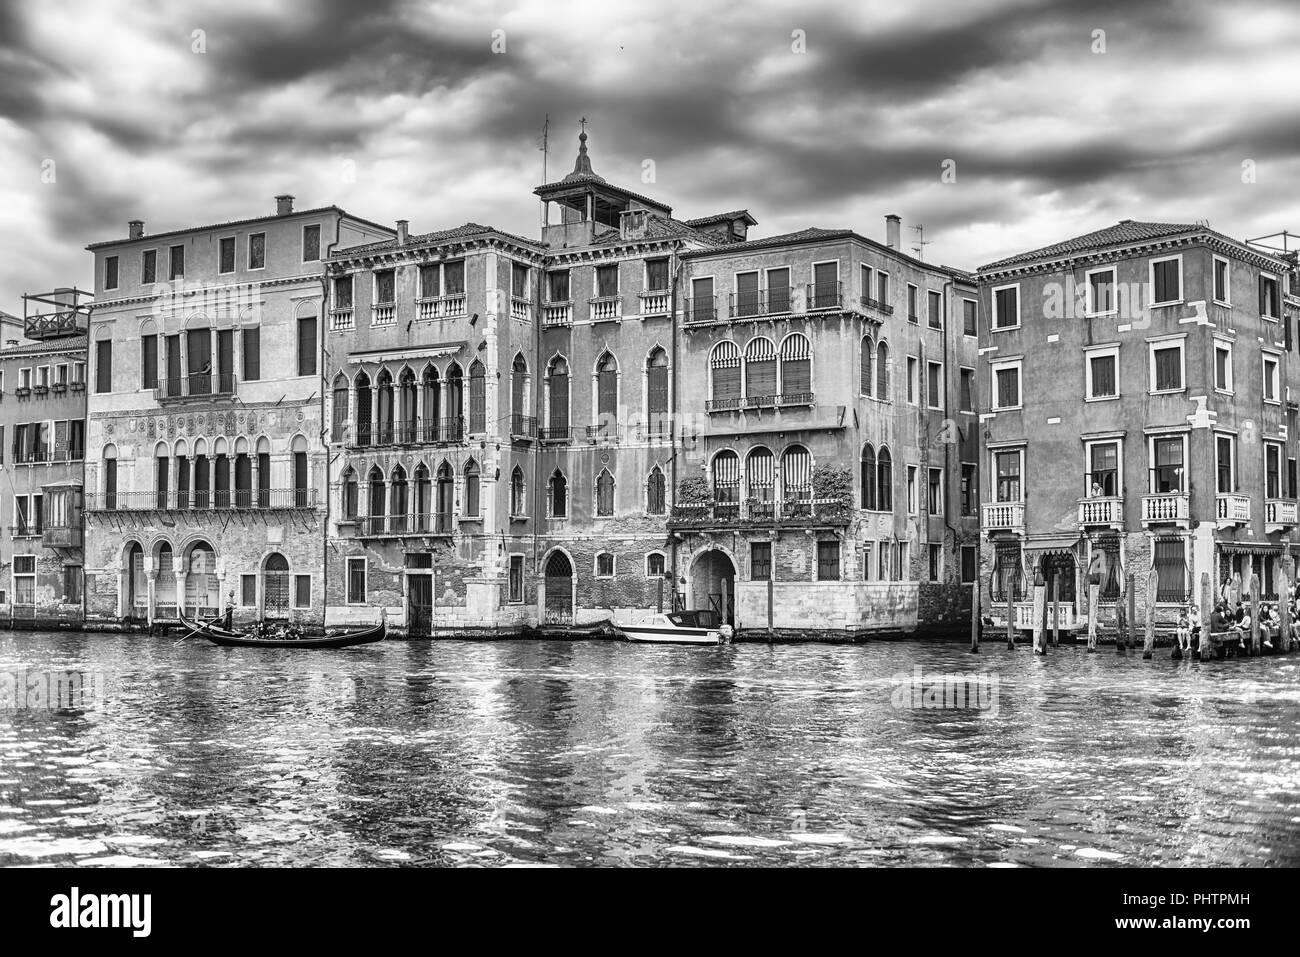 Scenic architecture along the Grand Canal in Cannaregio district of Venice, Italy - Stock Image